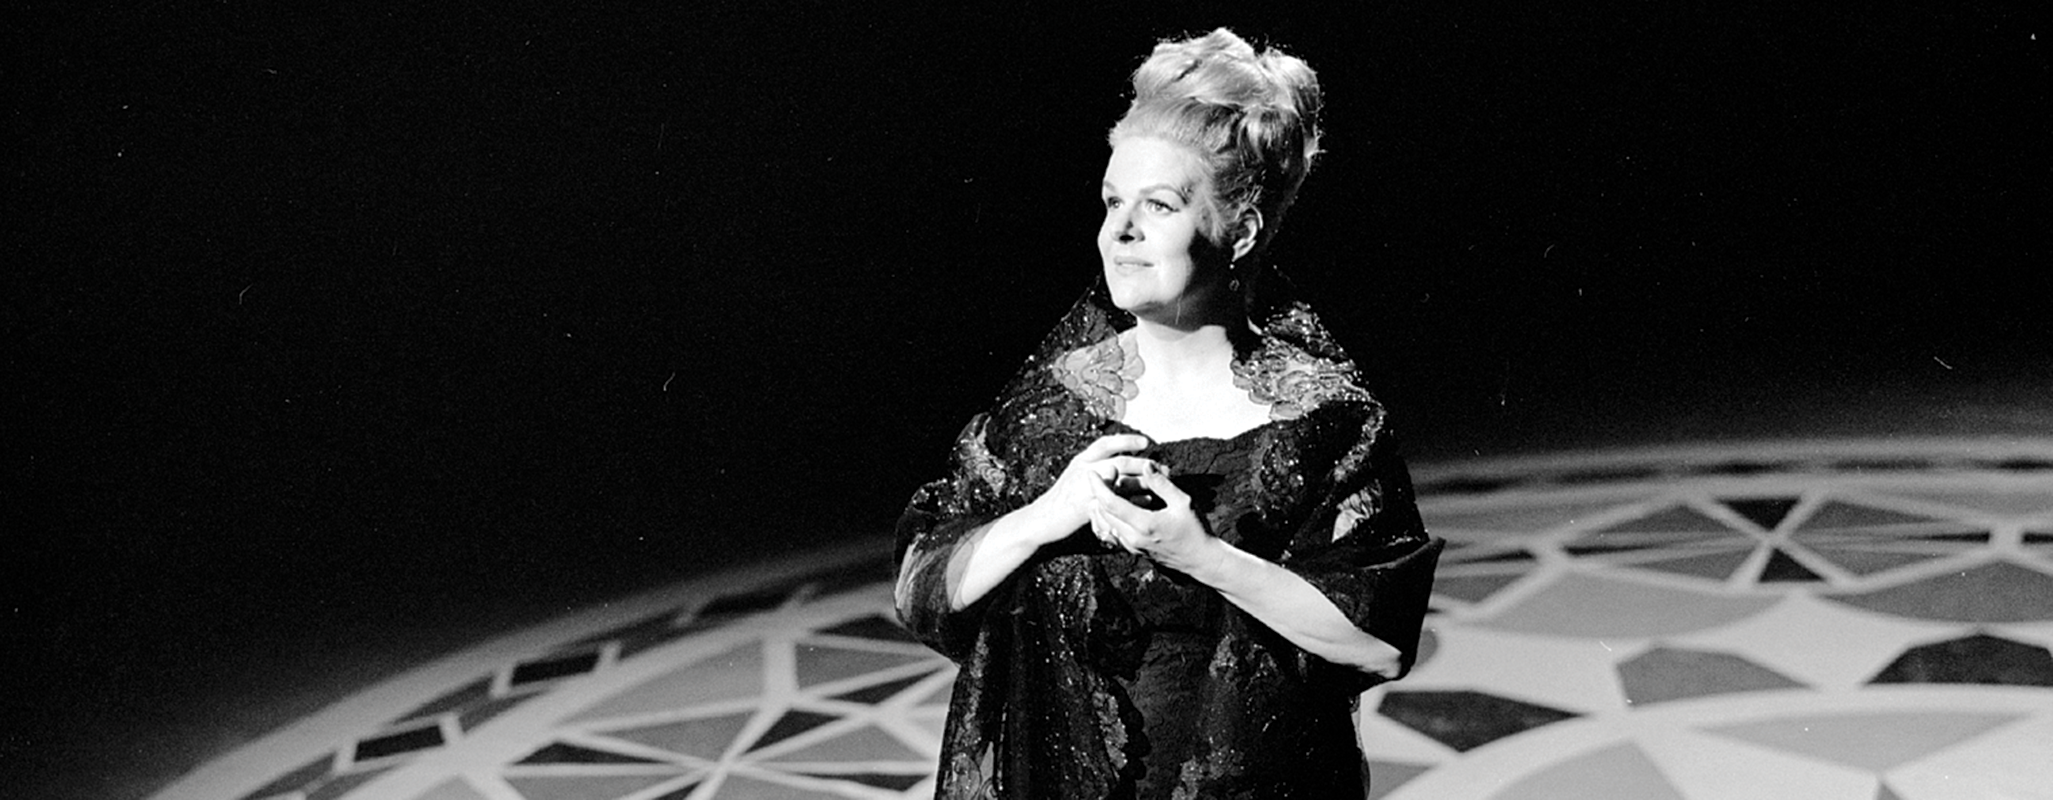 Contralto Maureen Forrester performs in this archival photo